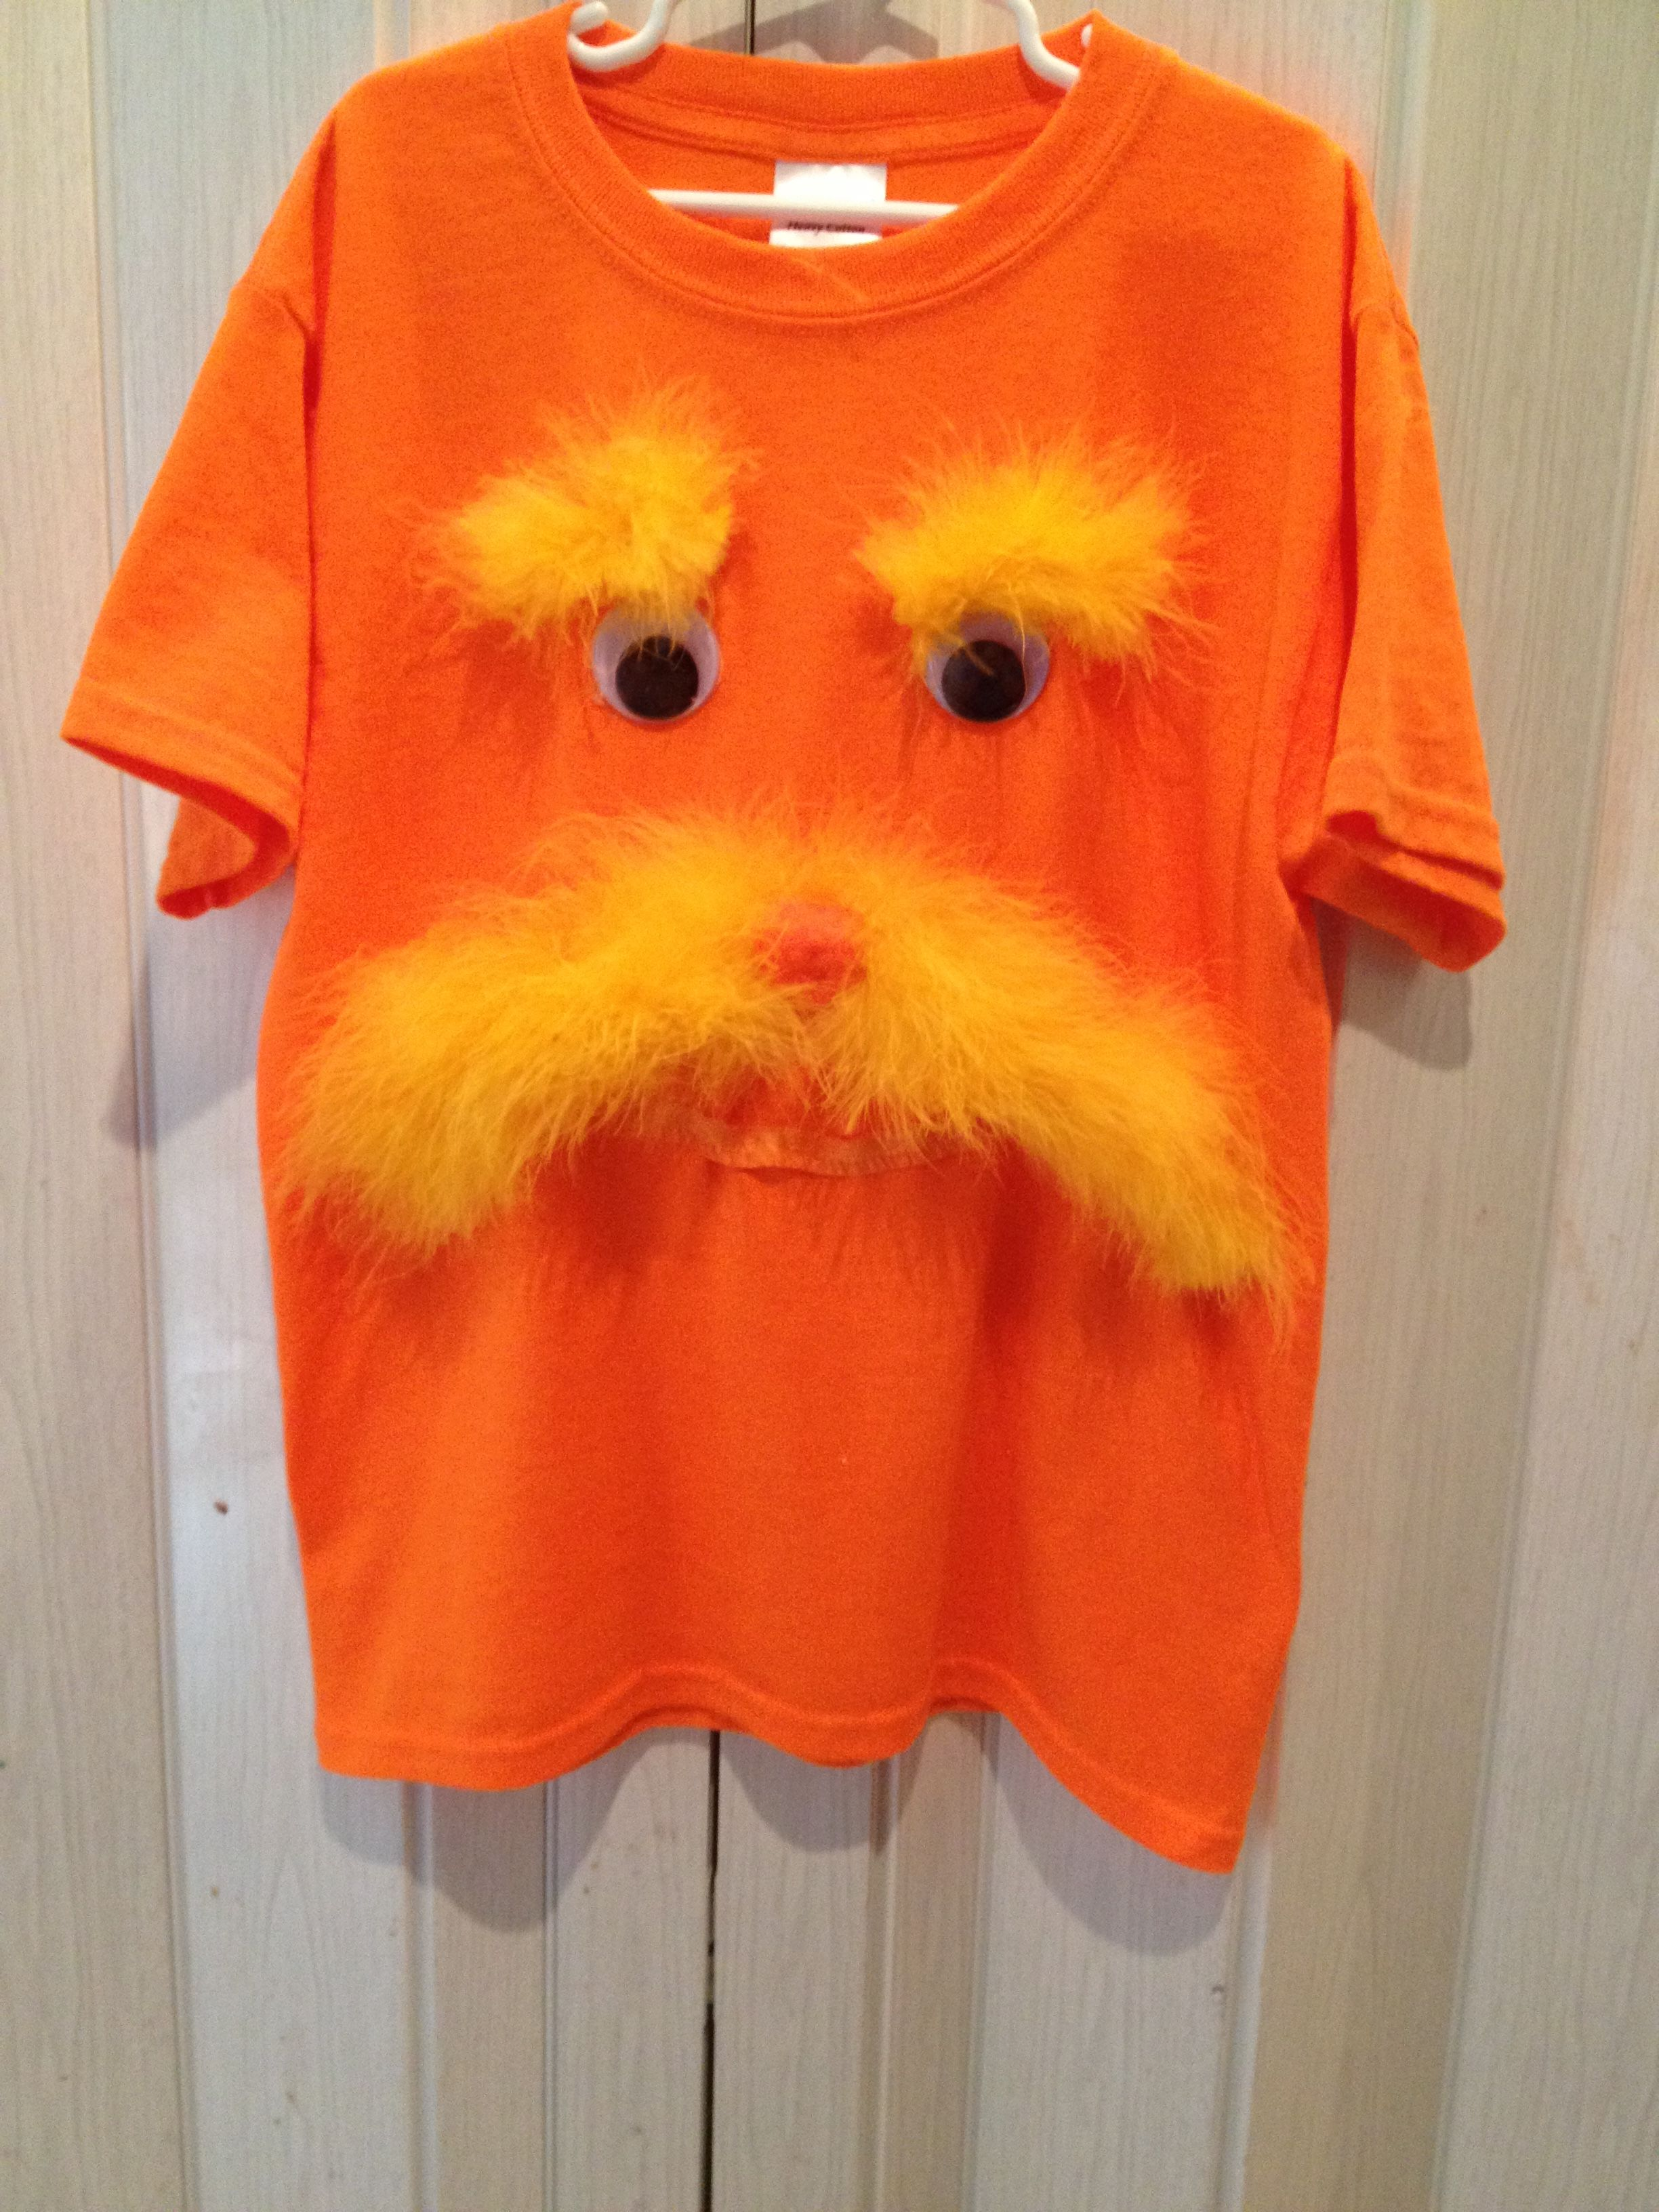 Lorax Shirt For Dr Suess Week More Dr Seuss Costumes Book Characters Dress Up Dr Seuss Shirts